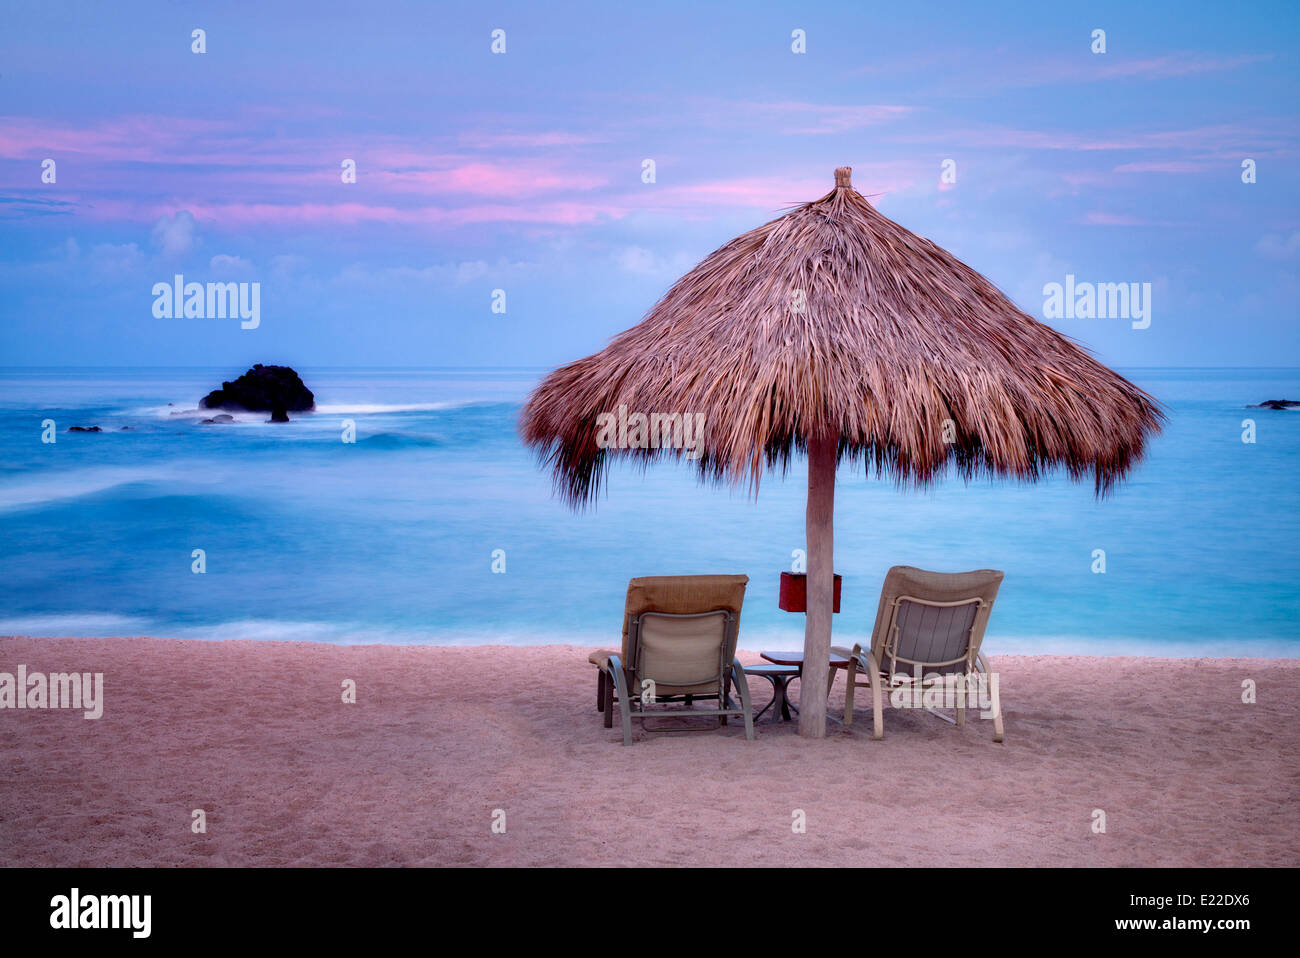 Beach and chairs with sunrise at Four Seasons. Punta Mita, Mexico. - Stock Image